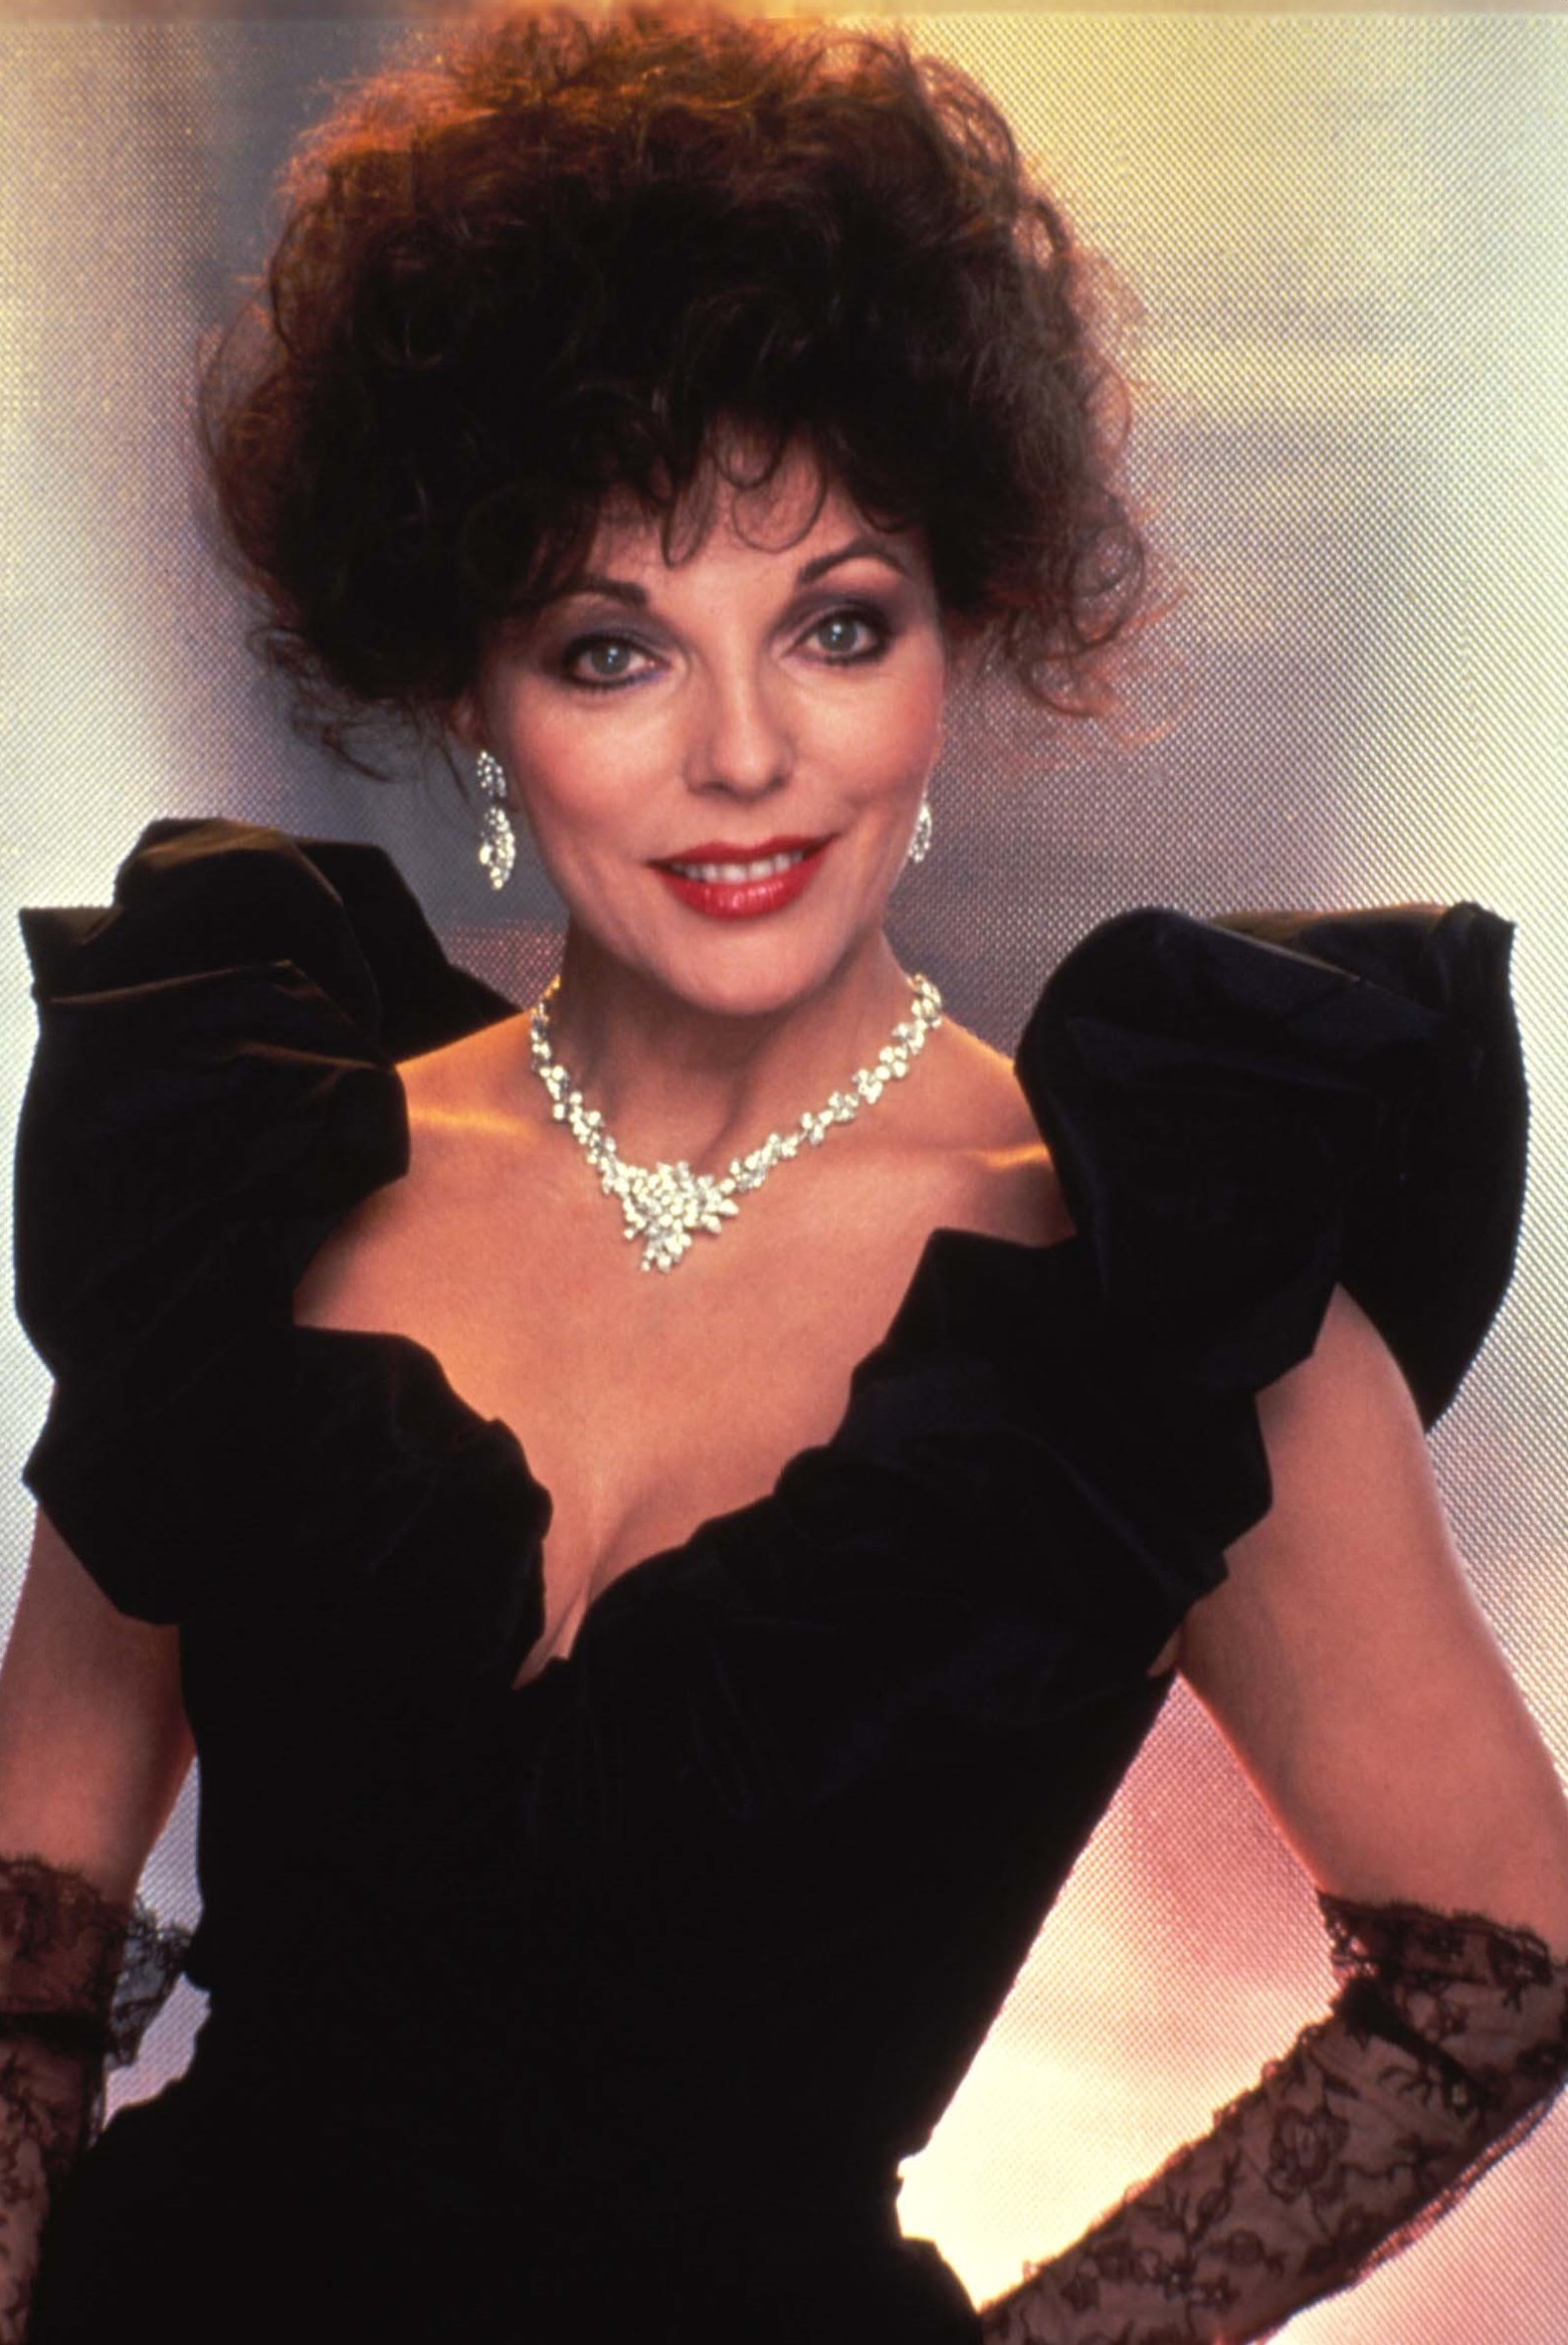 Joan collins fake photos #1